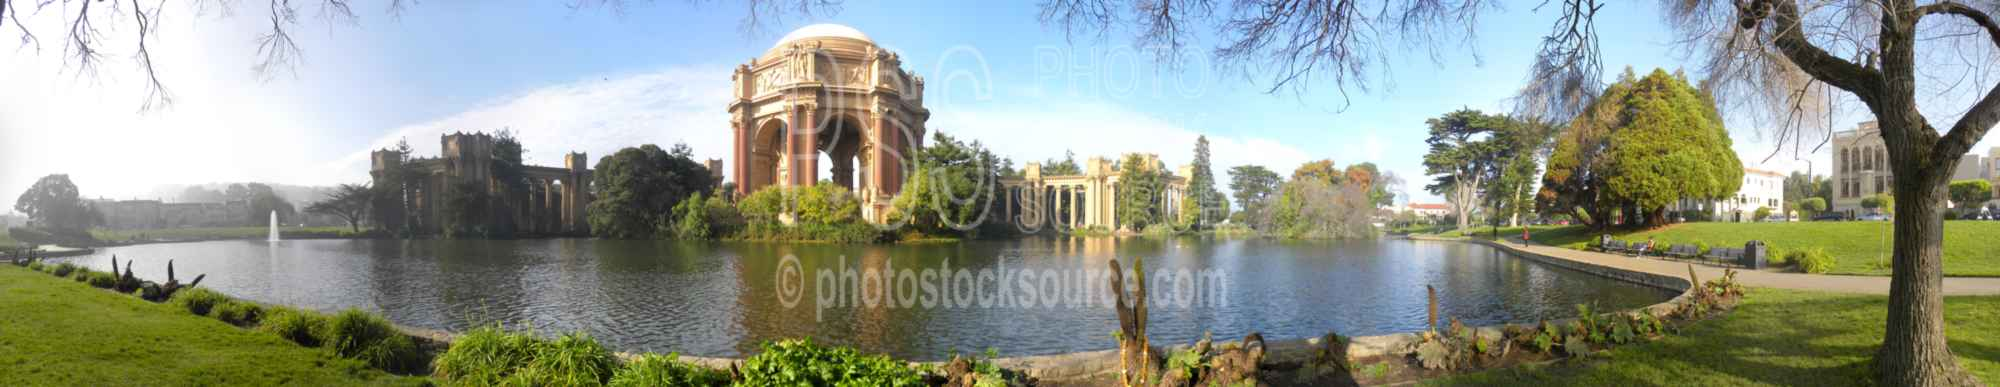 Palace of Fine Arts,landmark,greek,park,pond,lake,structure,cities panoramas,lakes panoramas,buildings panoramas